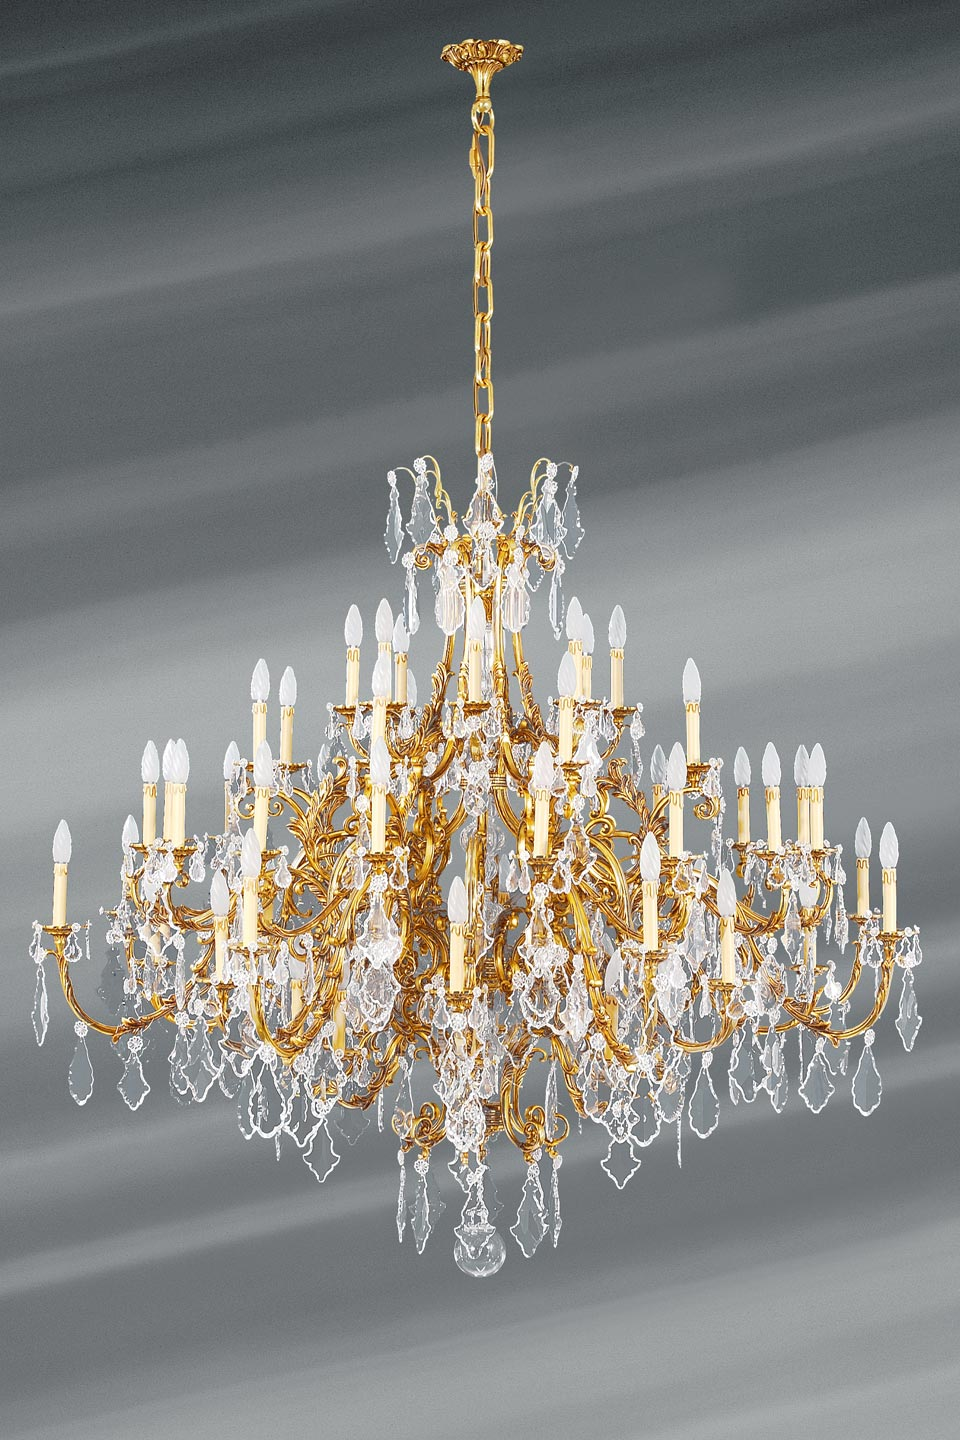 tassel chandelier in cut crystal patinated bronze old gold 56 30 or 80 lights available without crystals